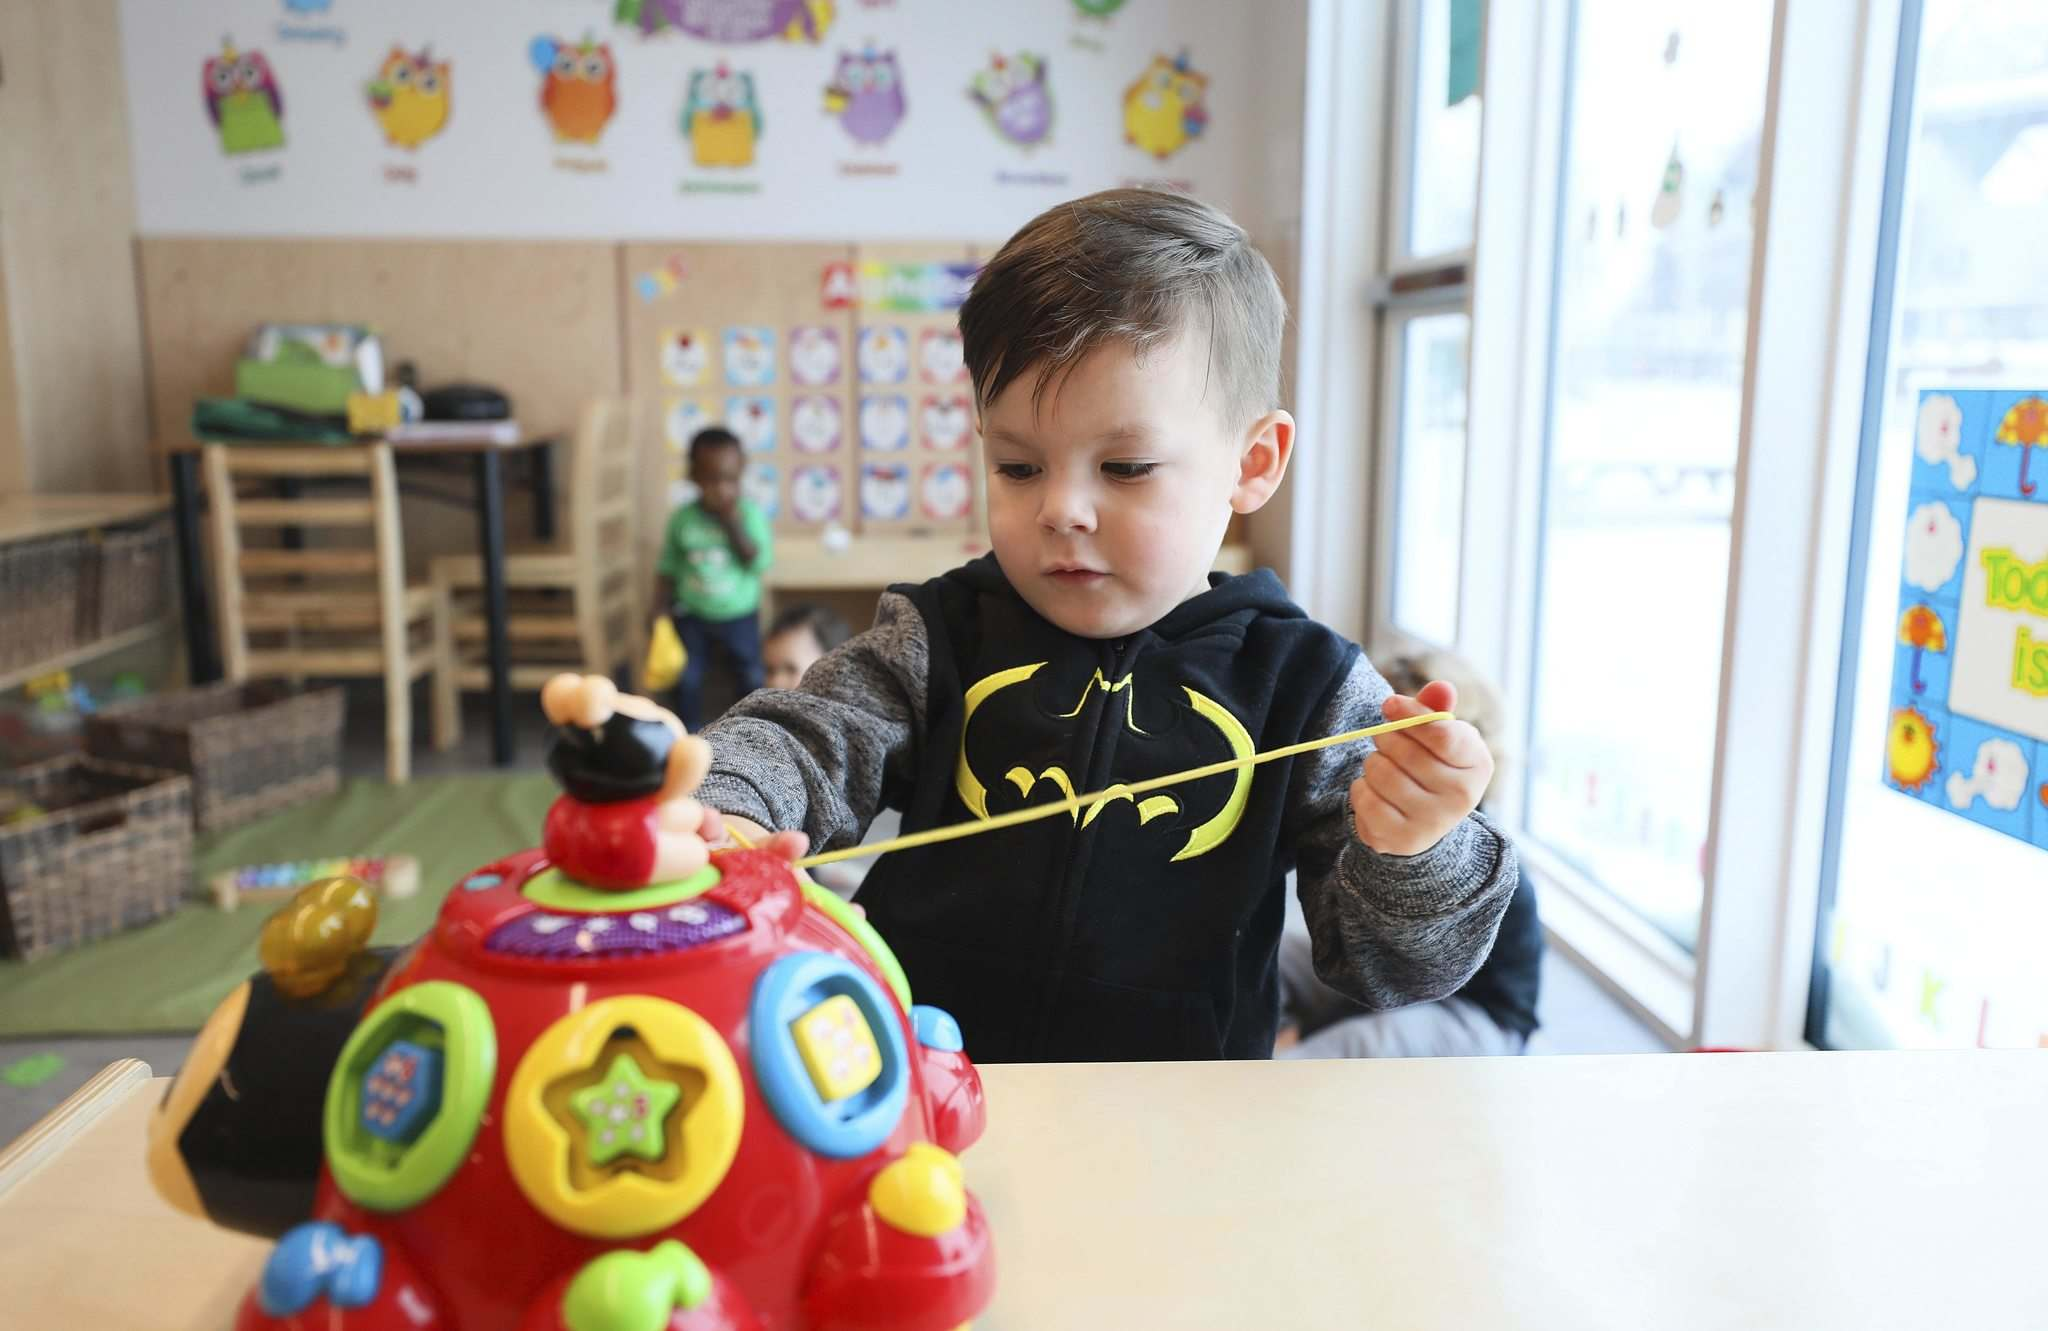 RUTH BONNEVILLE / WINNIPEG FREE PRESS</p><p>Three-year-old Renly Davidson plays with toys at the newly expanded Campus Children's Centre at U of M's Fort Garry campus.</p>